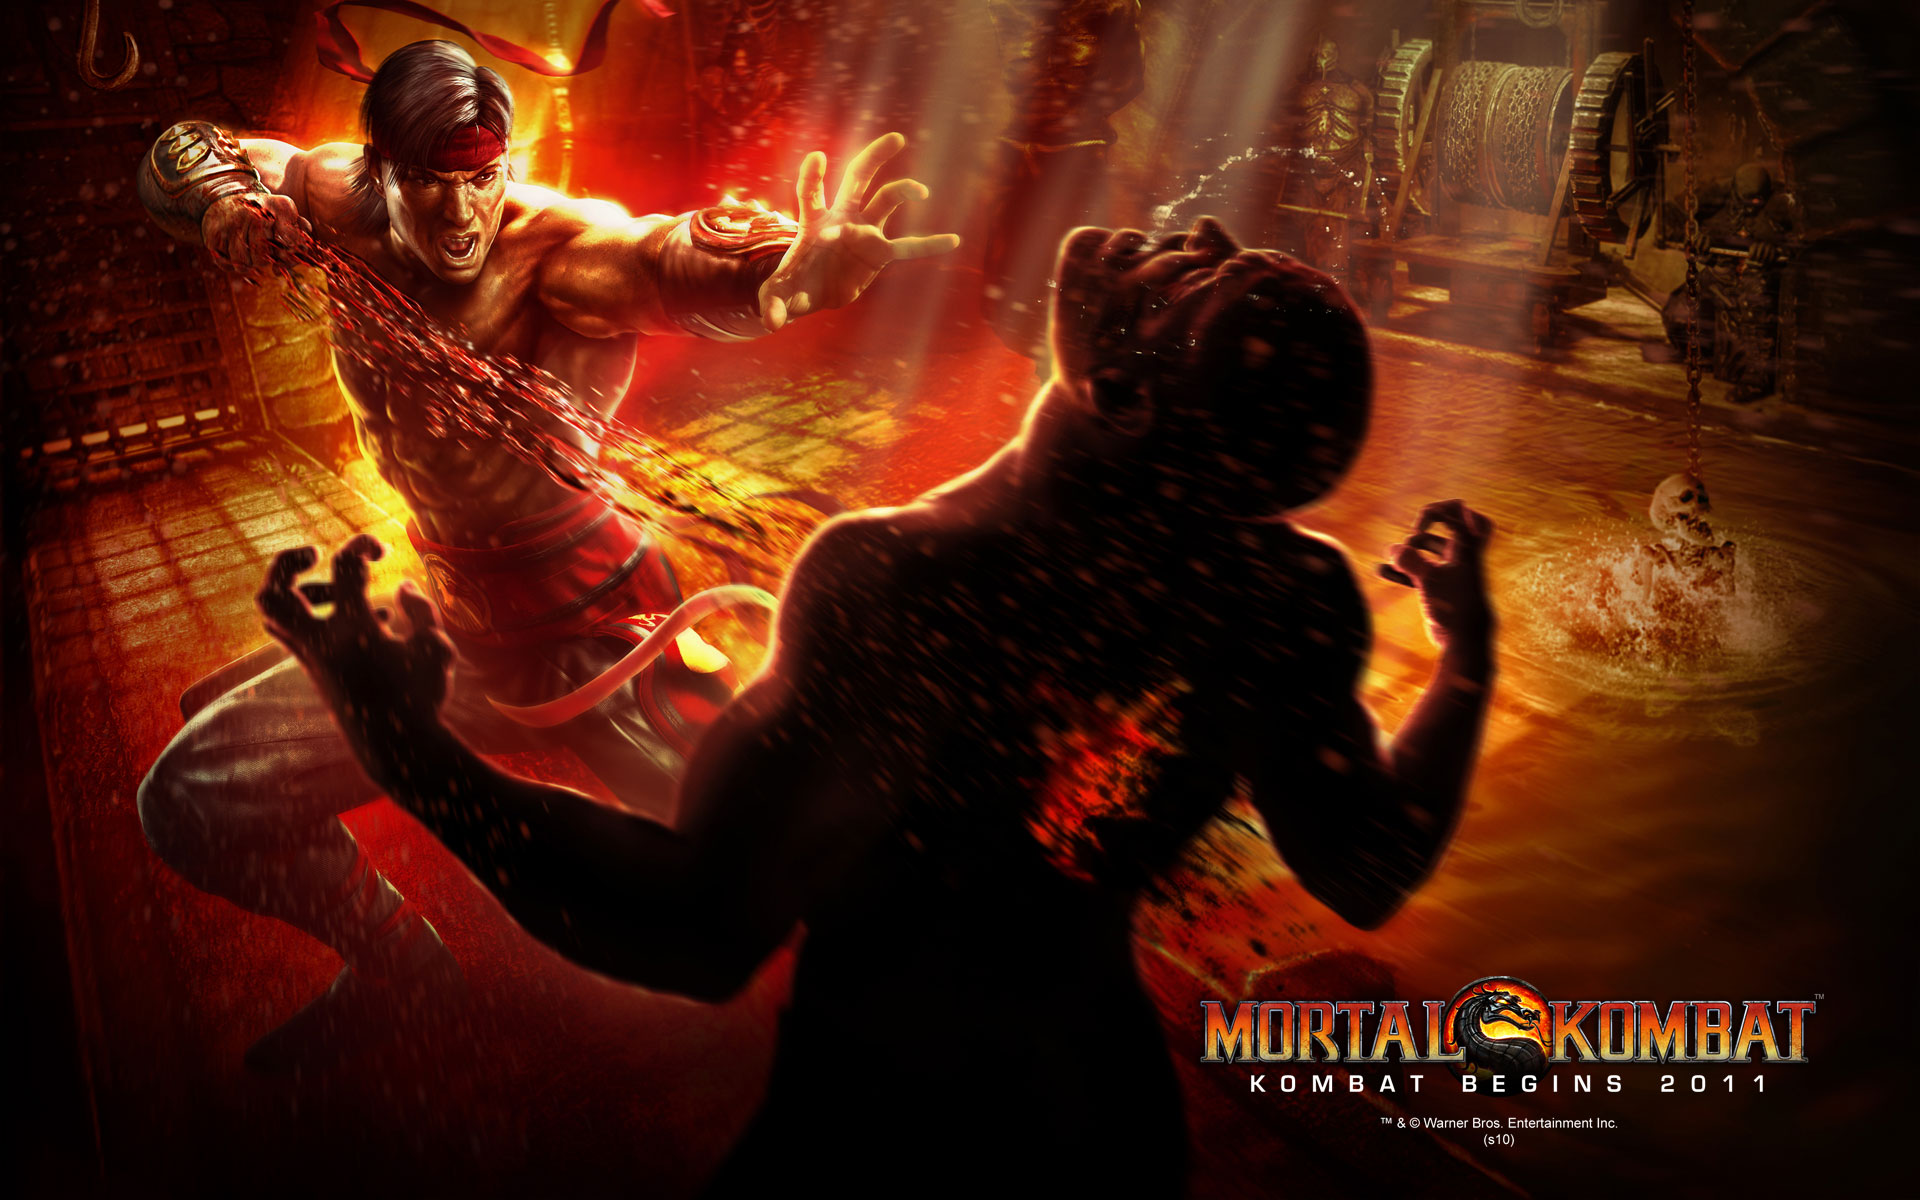 Mortal Kombat 9 2011 Cheats Unlockables Fatalites Babalities